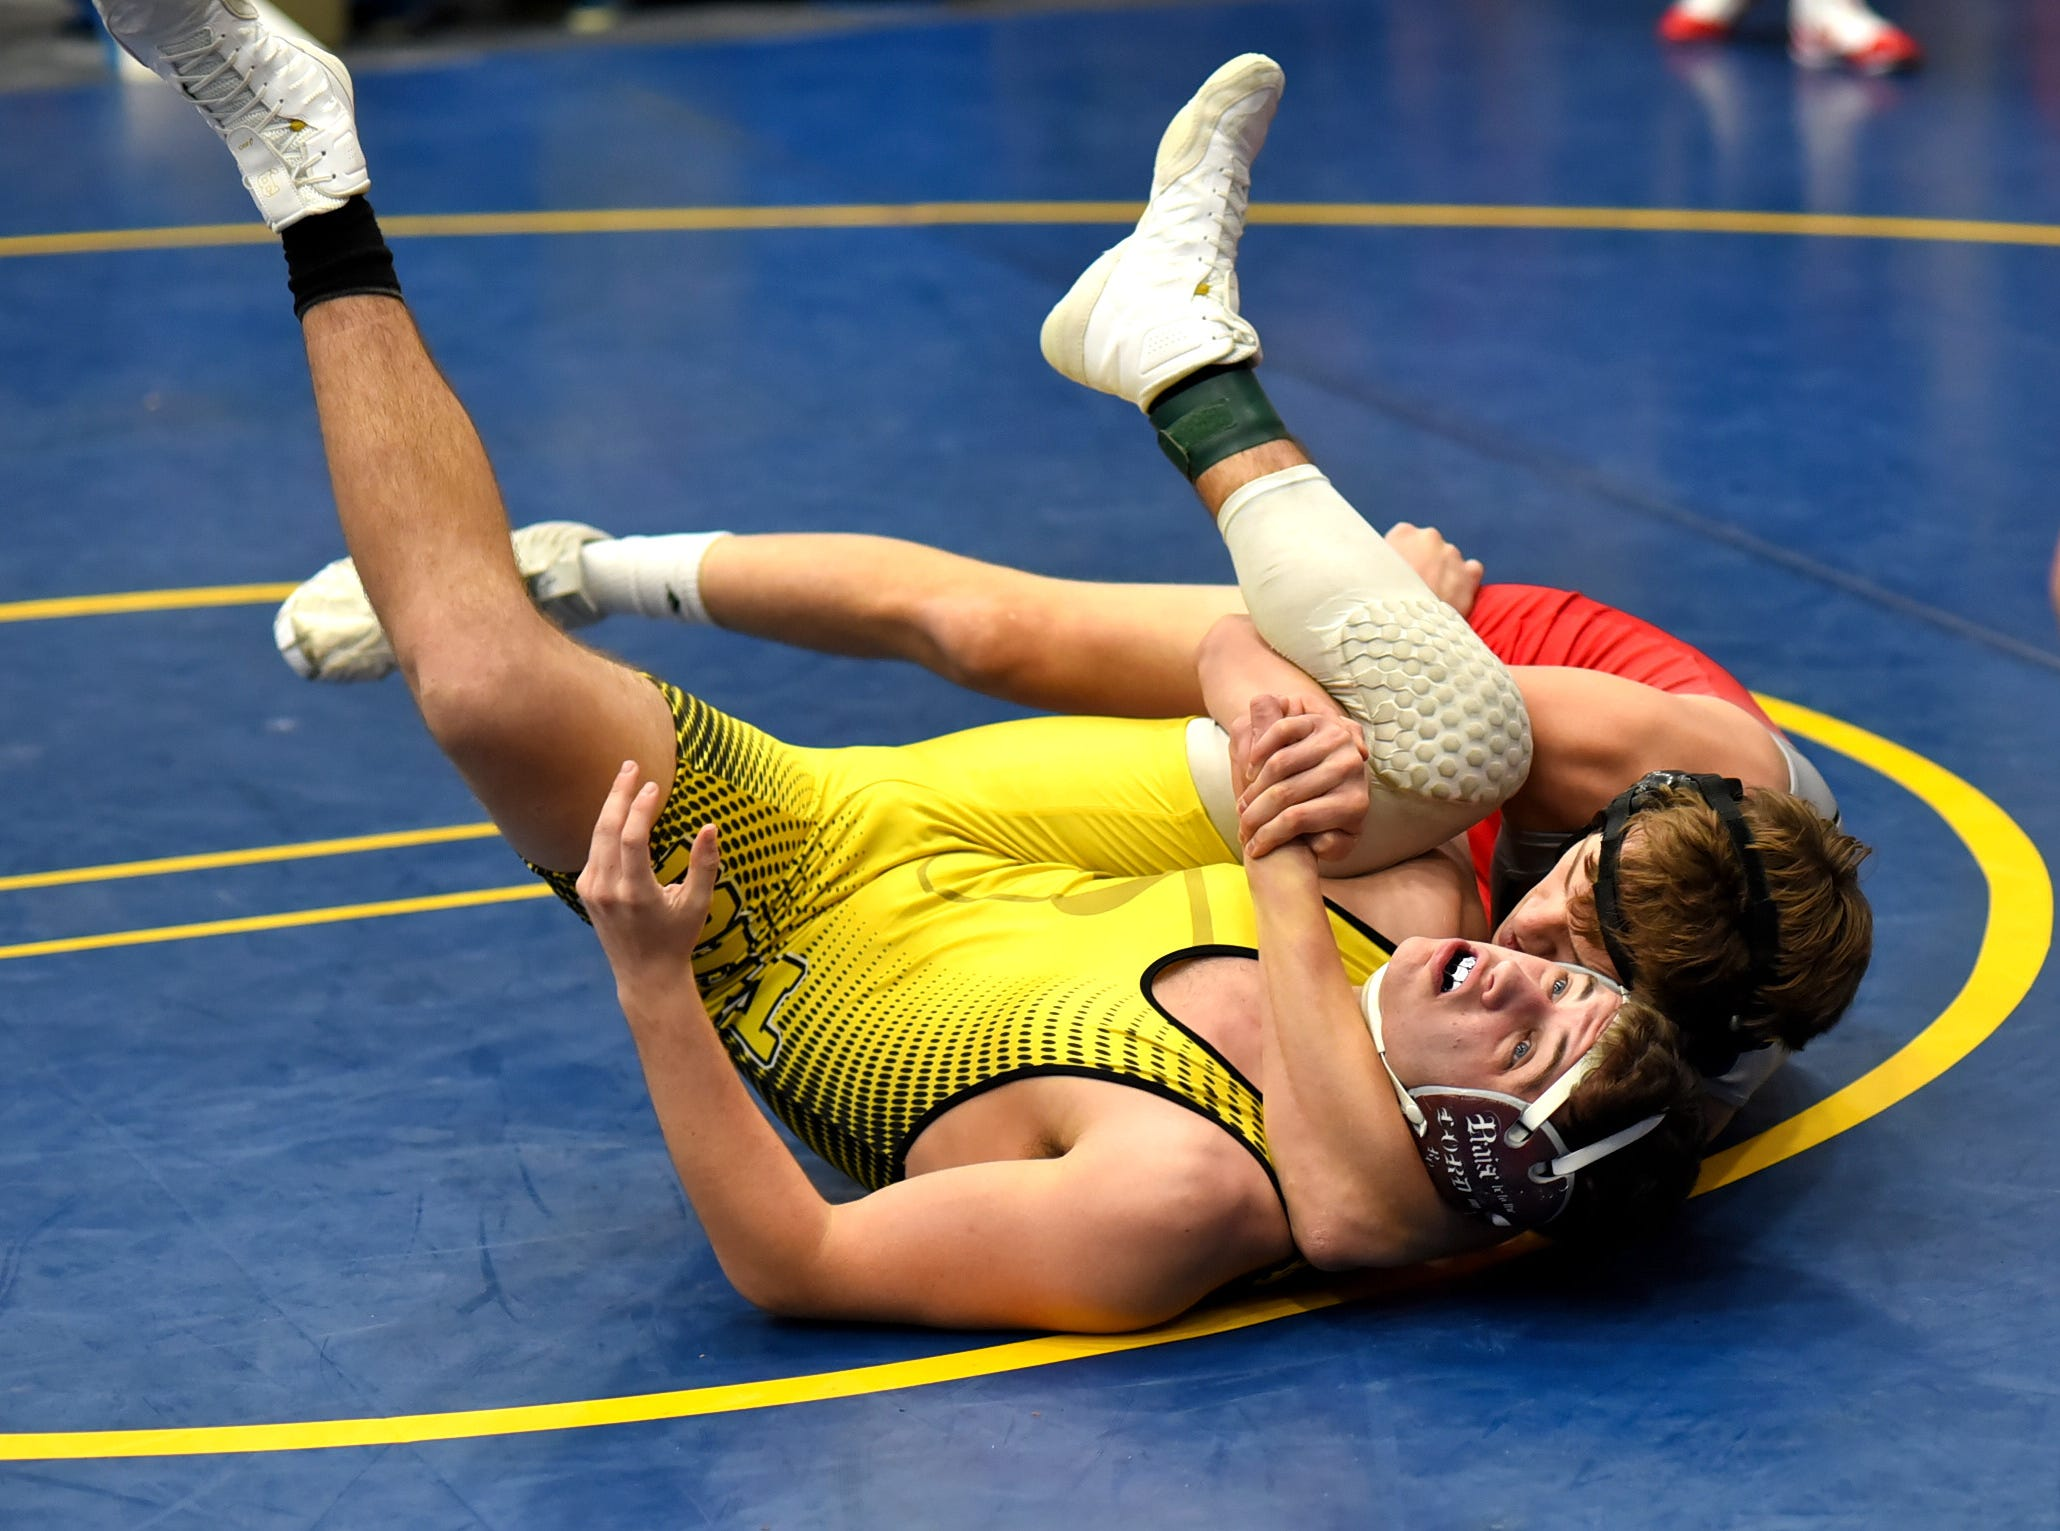 Chad Jarvis comes back for a Goshen pinfall over Dakotah Ritter of Taylor in the 170 lbs. class at the Bob Kearns Madeira Invitational, January 4, 2019.